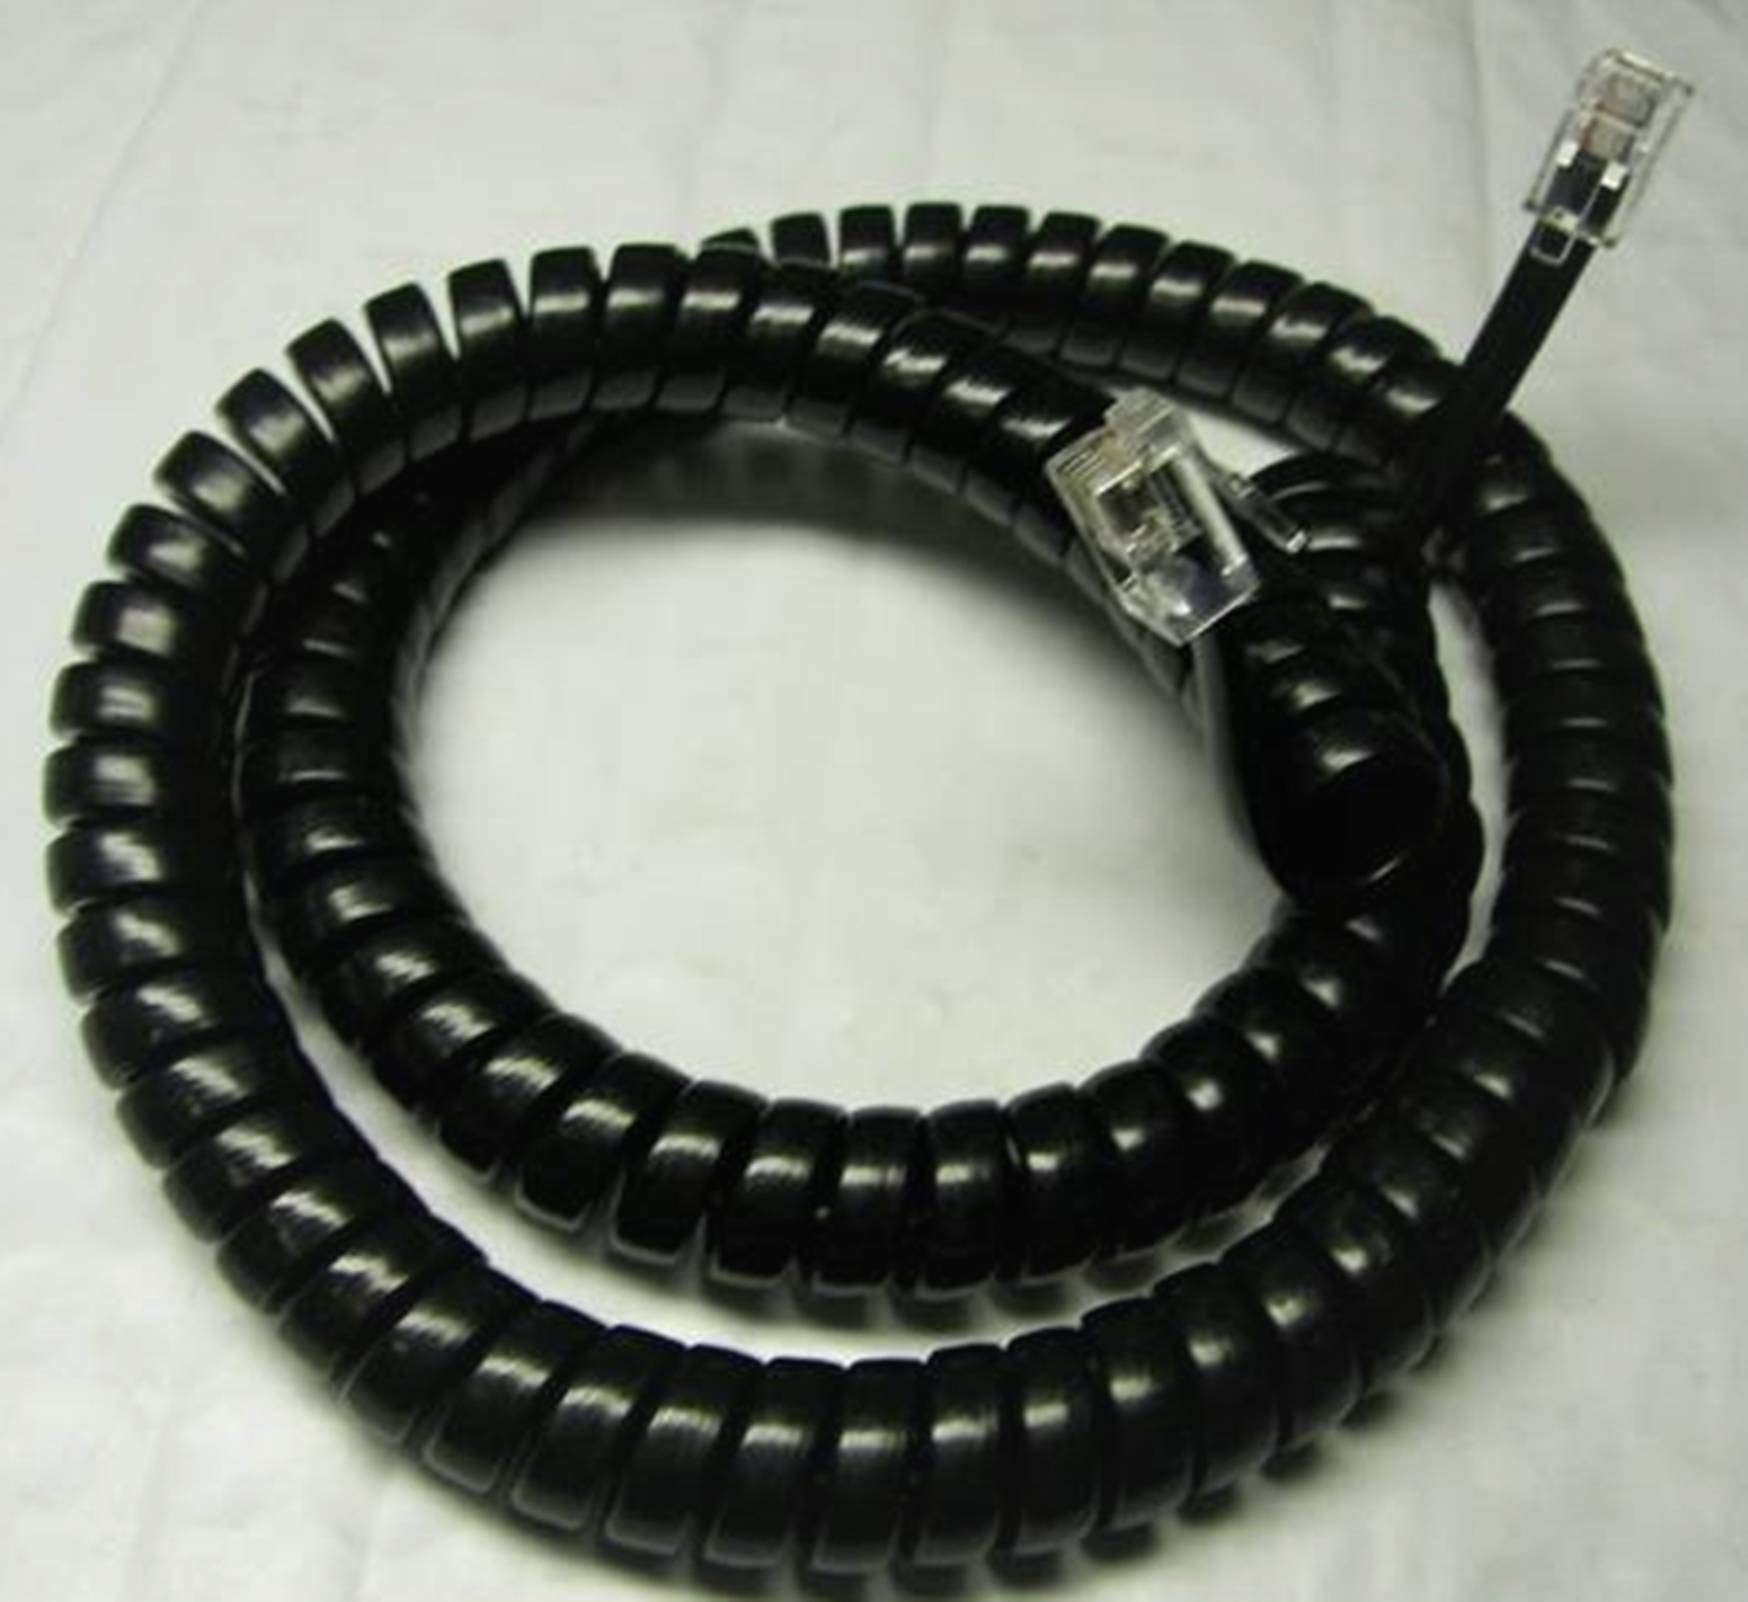 Lot of 25 Glossy Black 12' Ft Handset Cords for Shoretel 100 200 500 Series IP Phone 110 115 210 212 212K 230 230G 530 560 560G 565 565G SIA SEV (25-Pack) by DIY-BizPhones